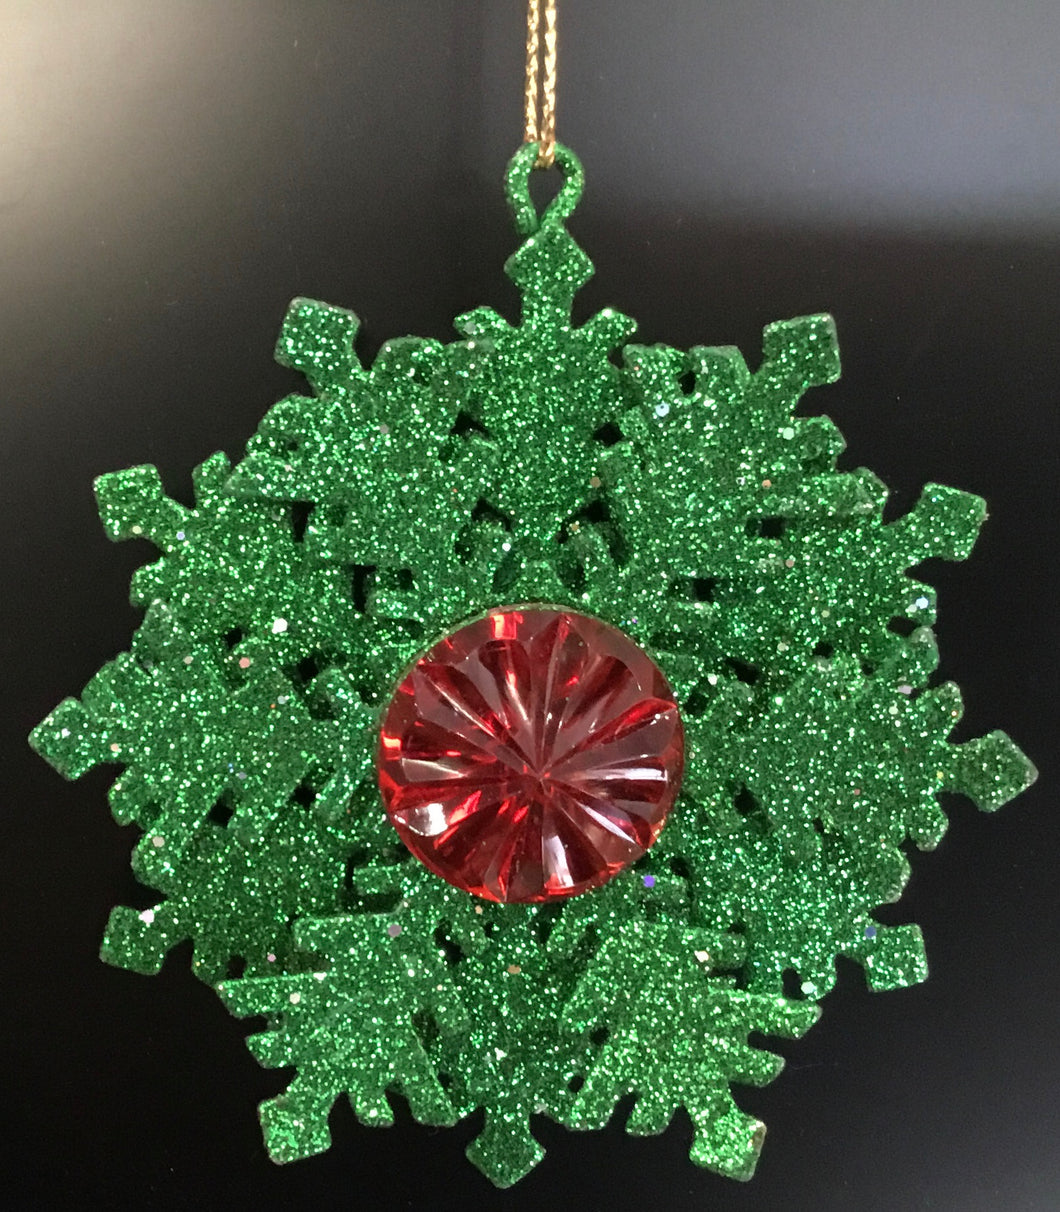 Green glitter snowflake with red jewell